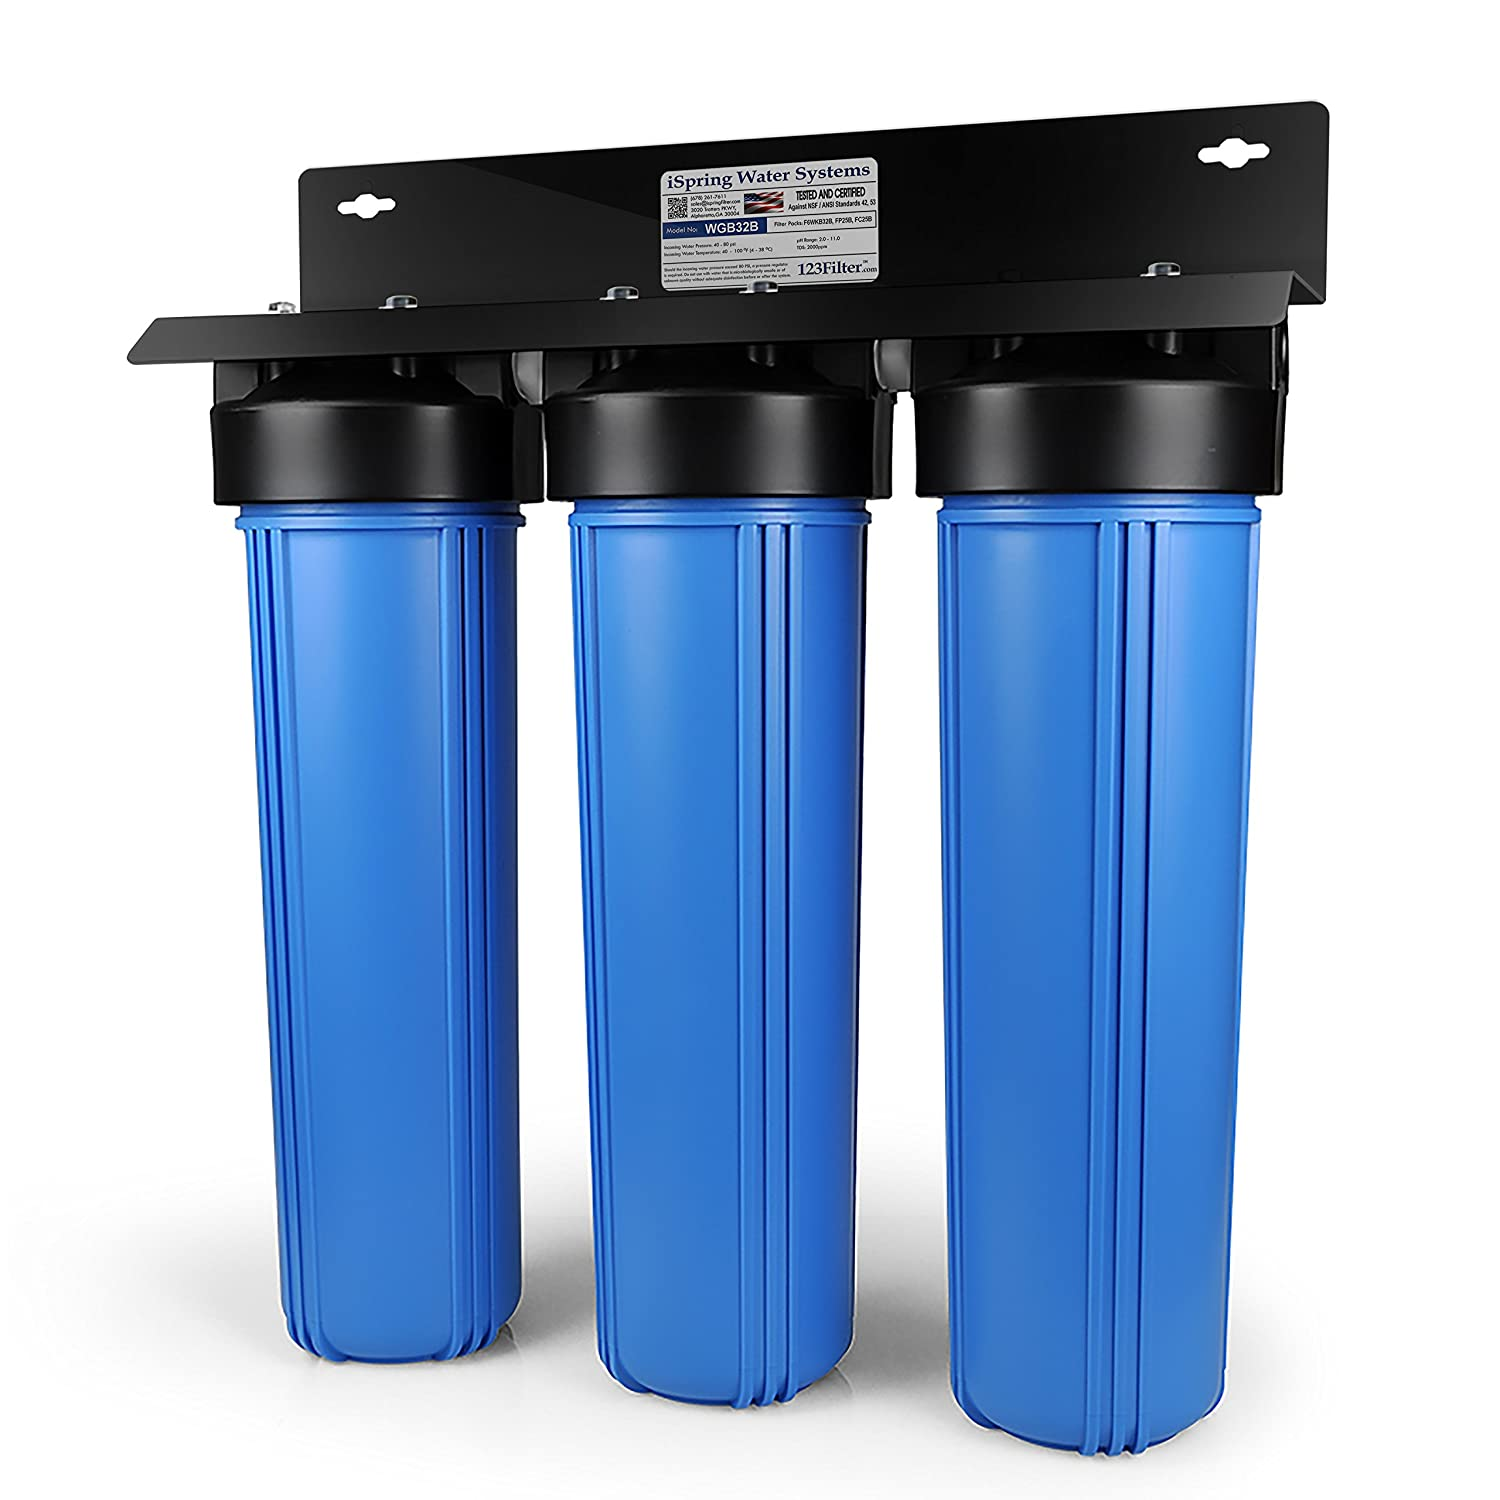 Household Water Filtration Ispring Wgb32b 3 Stage Whole House Water Filtration System W 20